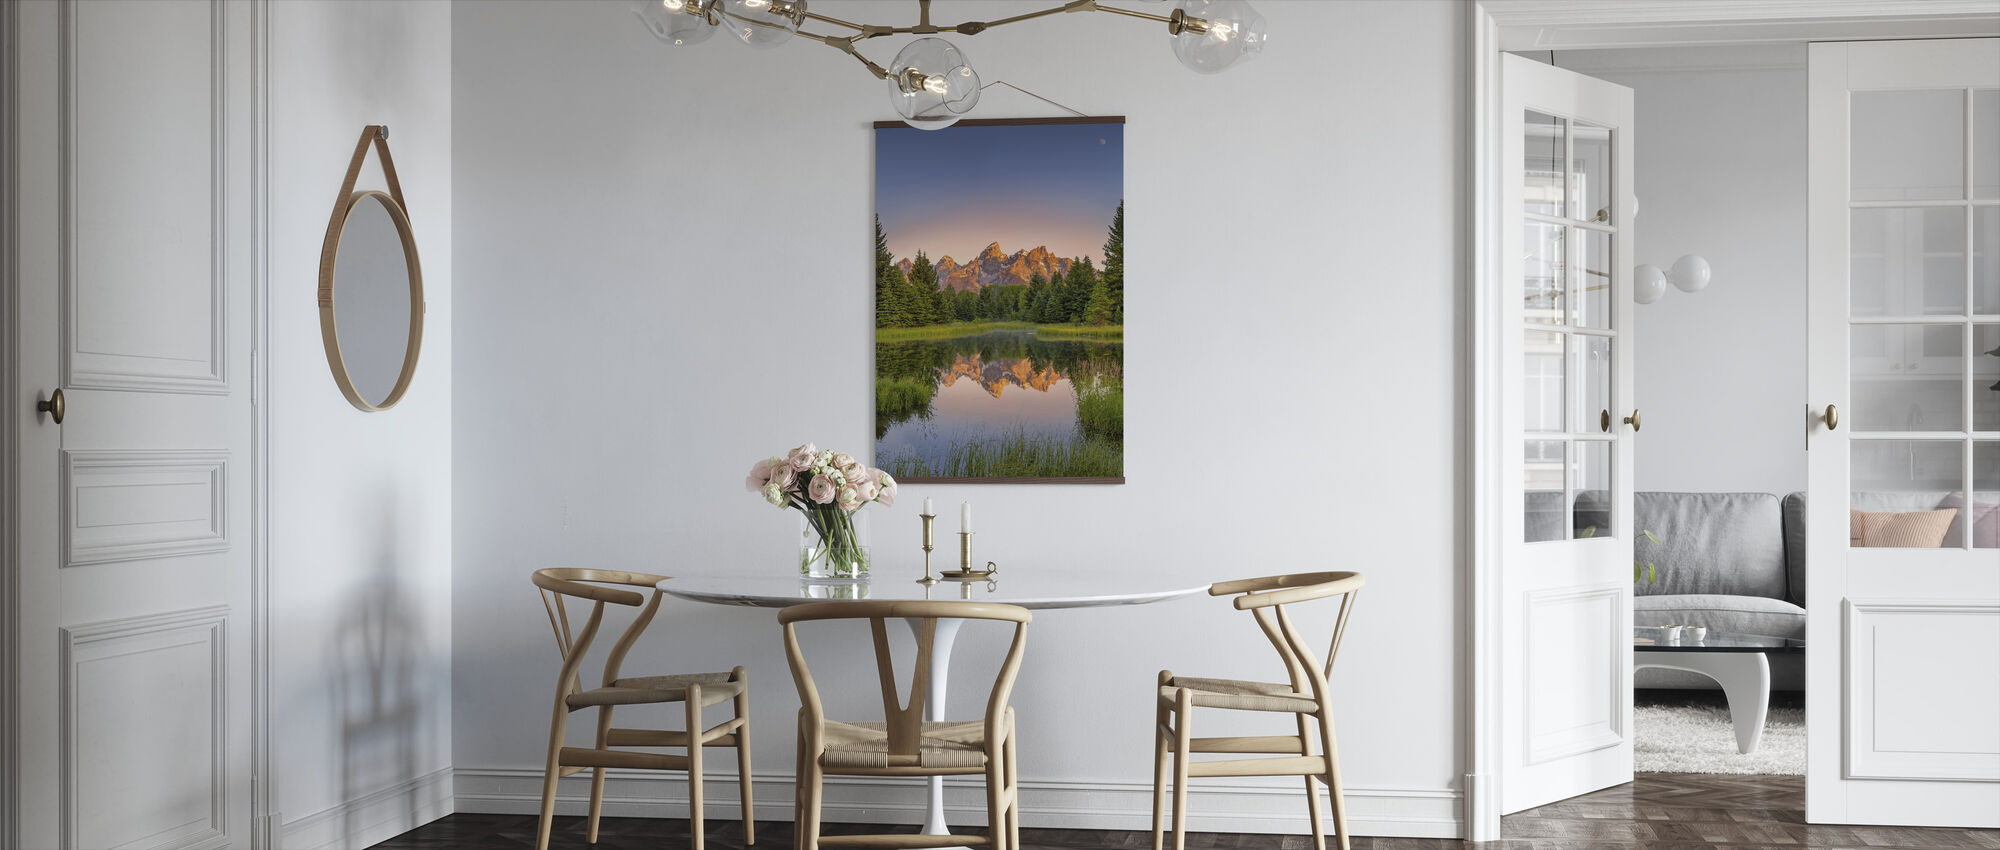 Dawn at Schwabacher's Landing - Poster - Kitchen